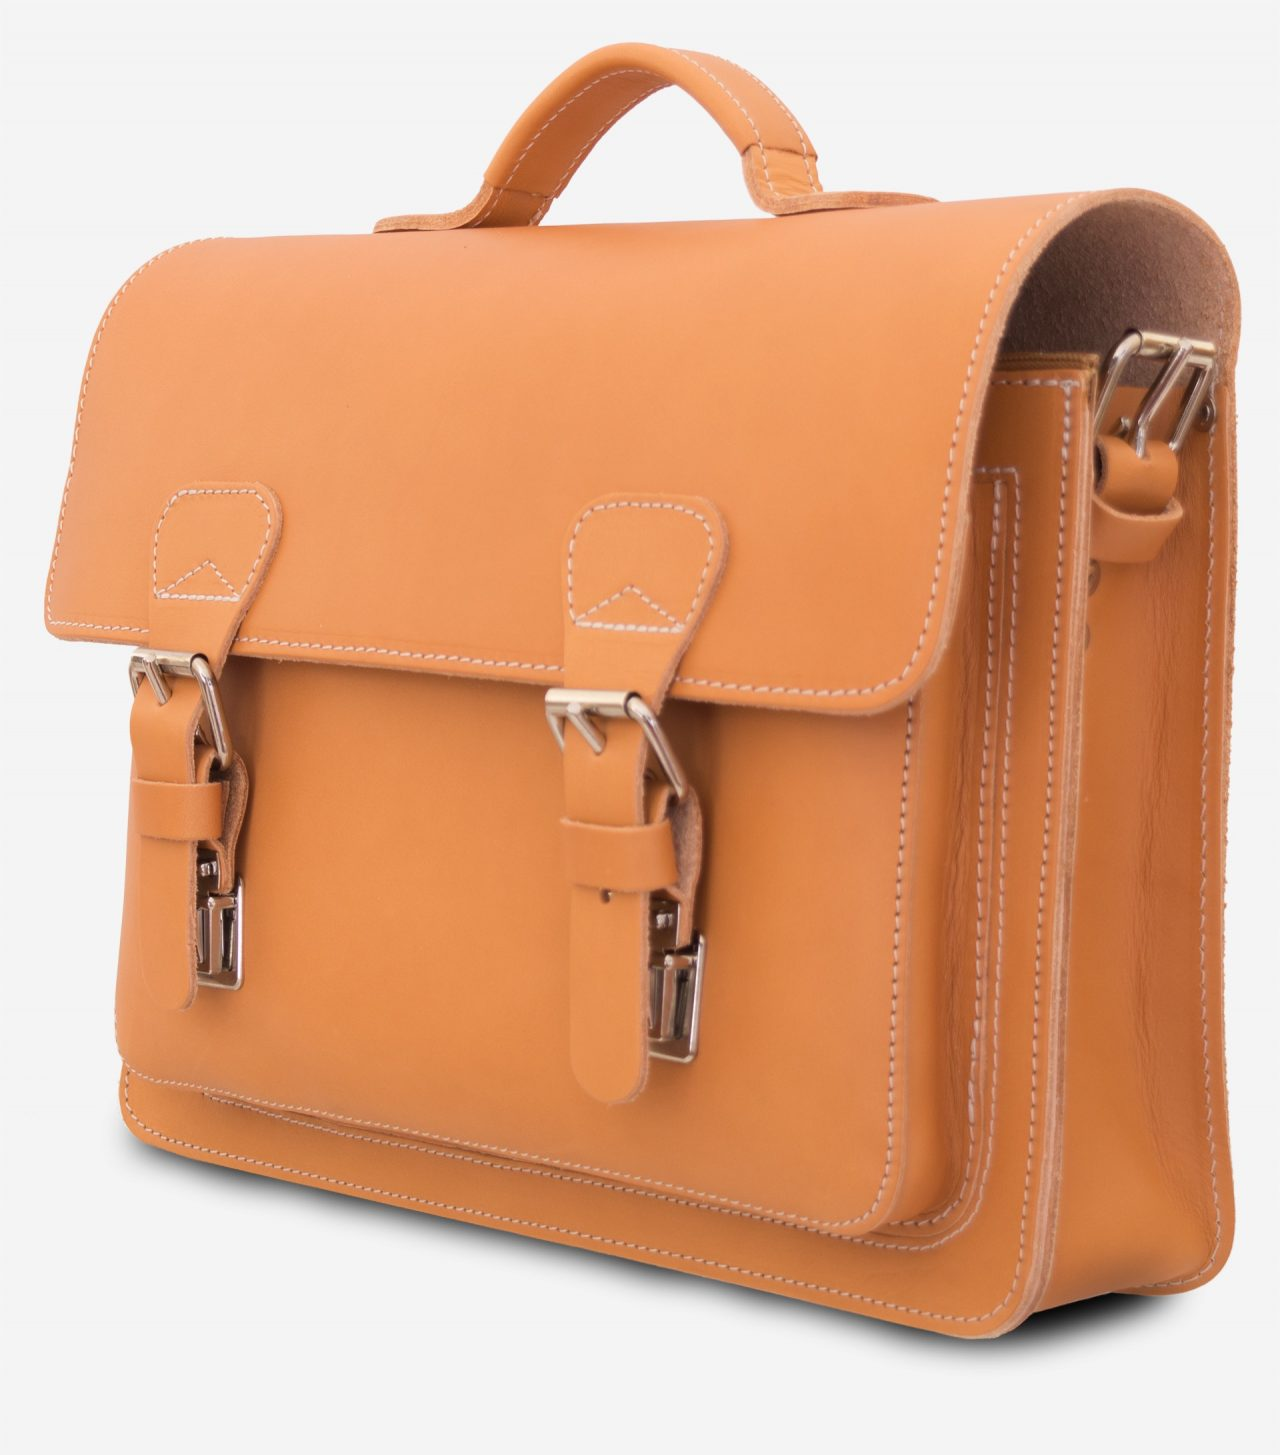 Front view of the tan leather briefcase with one compartment and one front pocket.